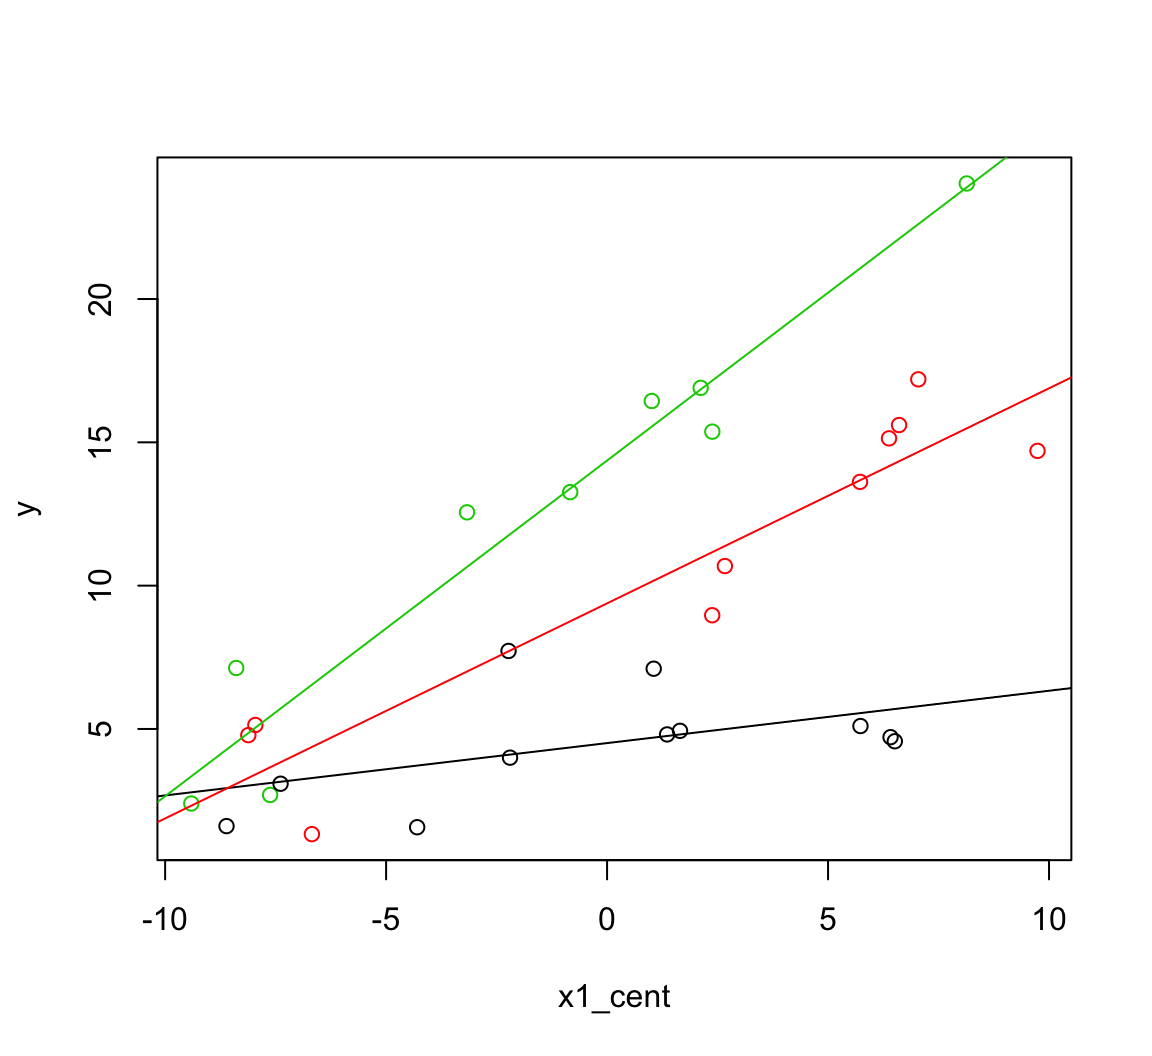 Centering factor interactions - Why and how to center